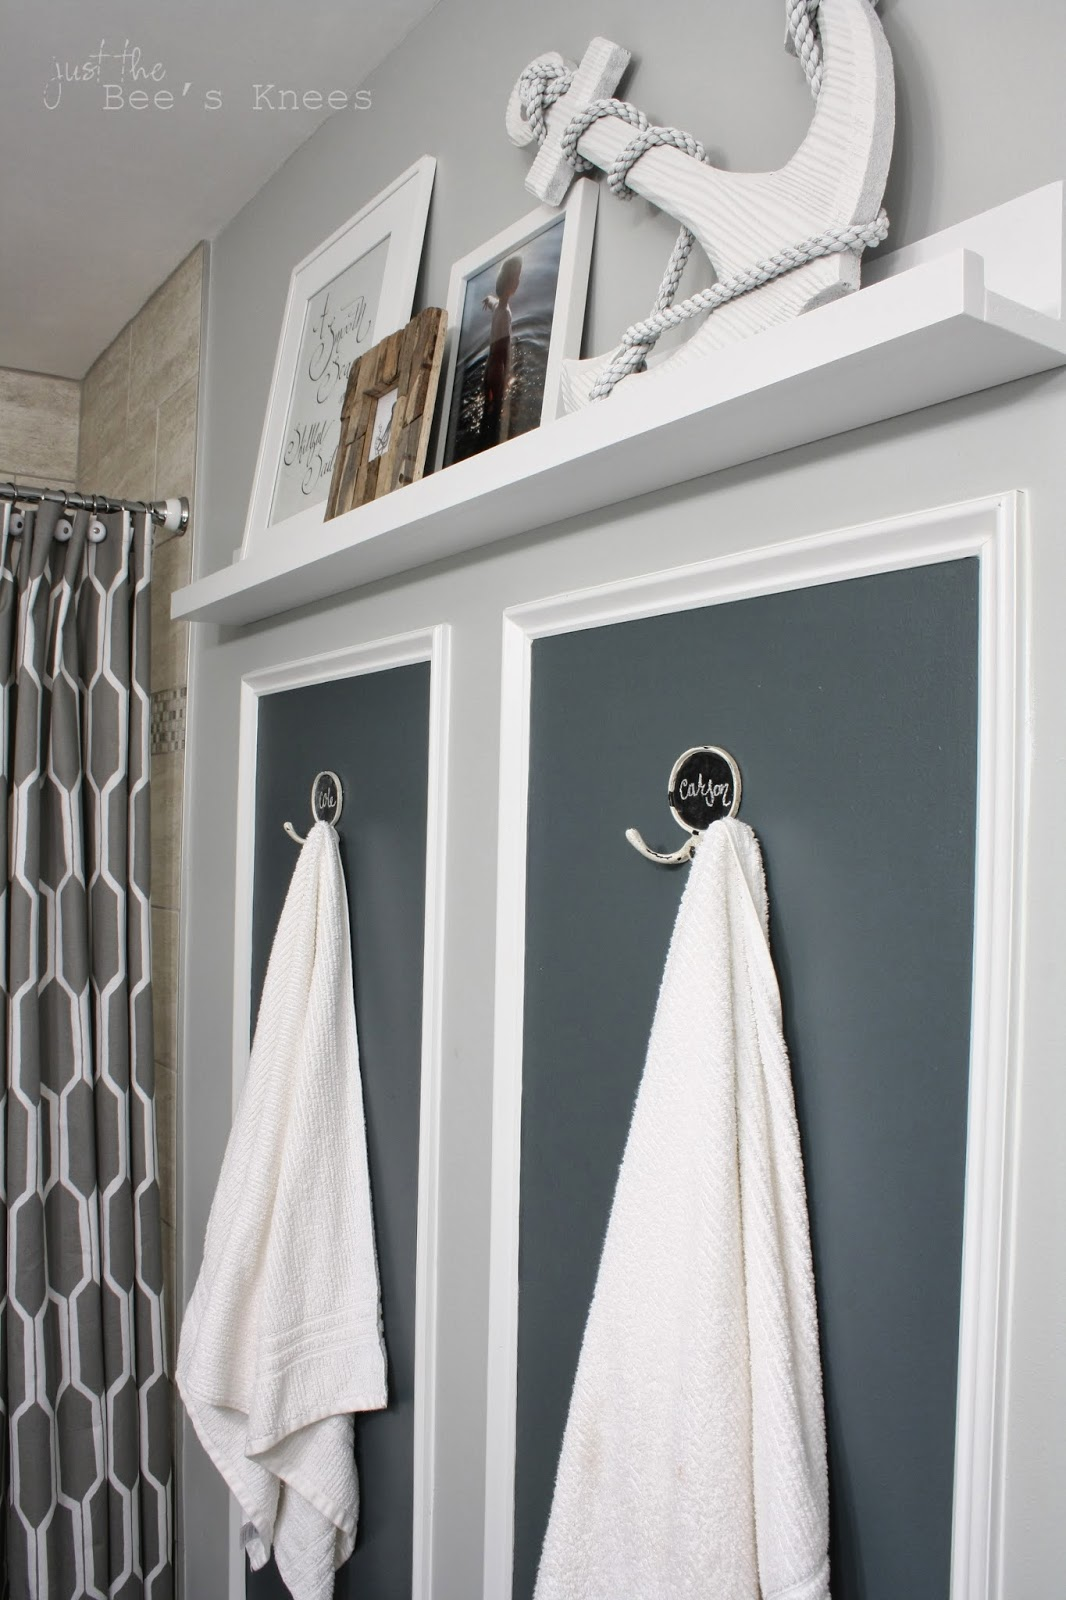 Accent paint color in bathroom